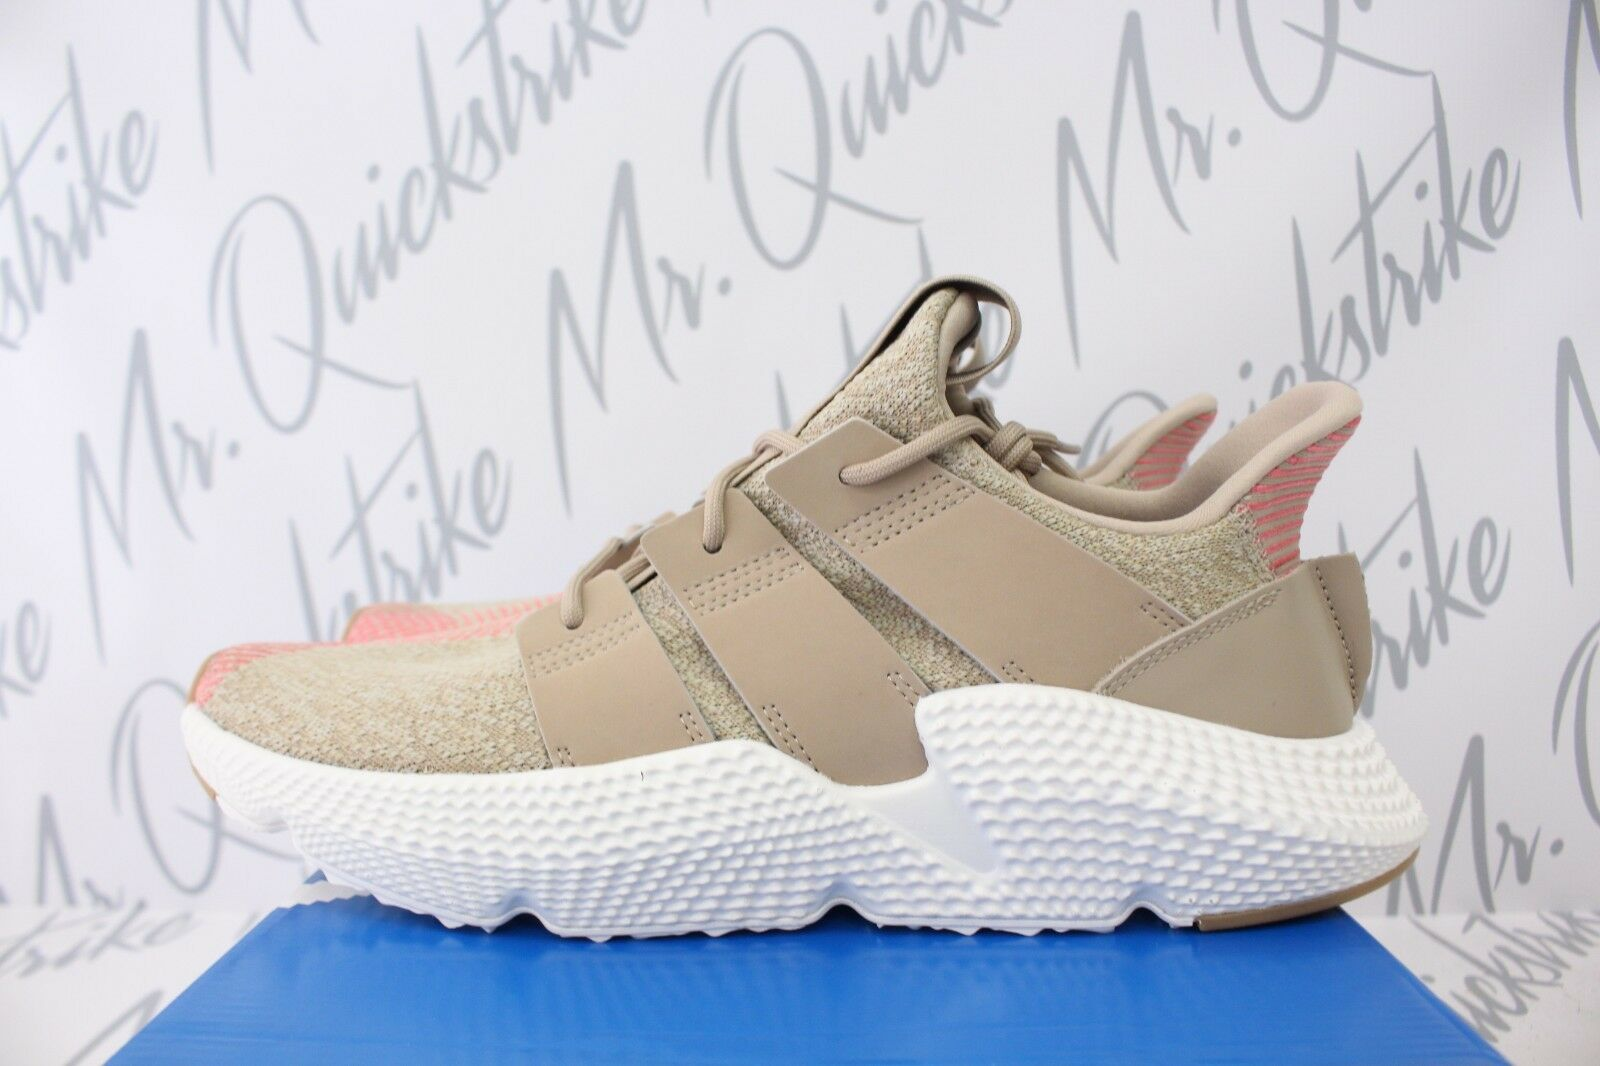 Adidas Originals Chalk prophere SZ 9 Trace Khaki Chalk Originals Rosa Blanco cq2128 589fb6